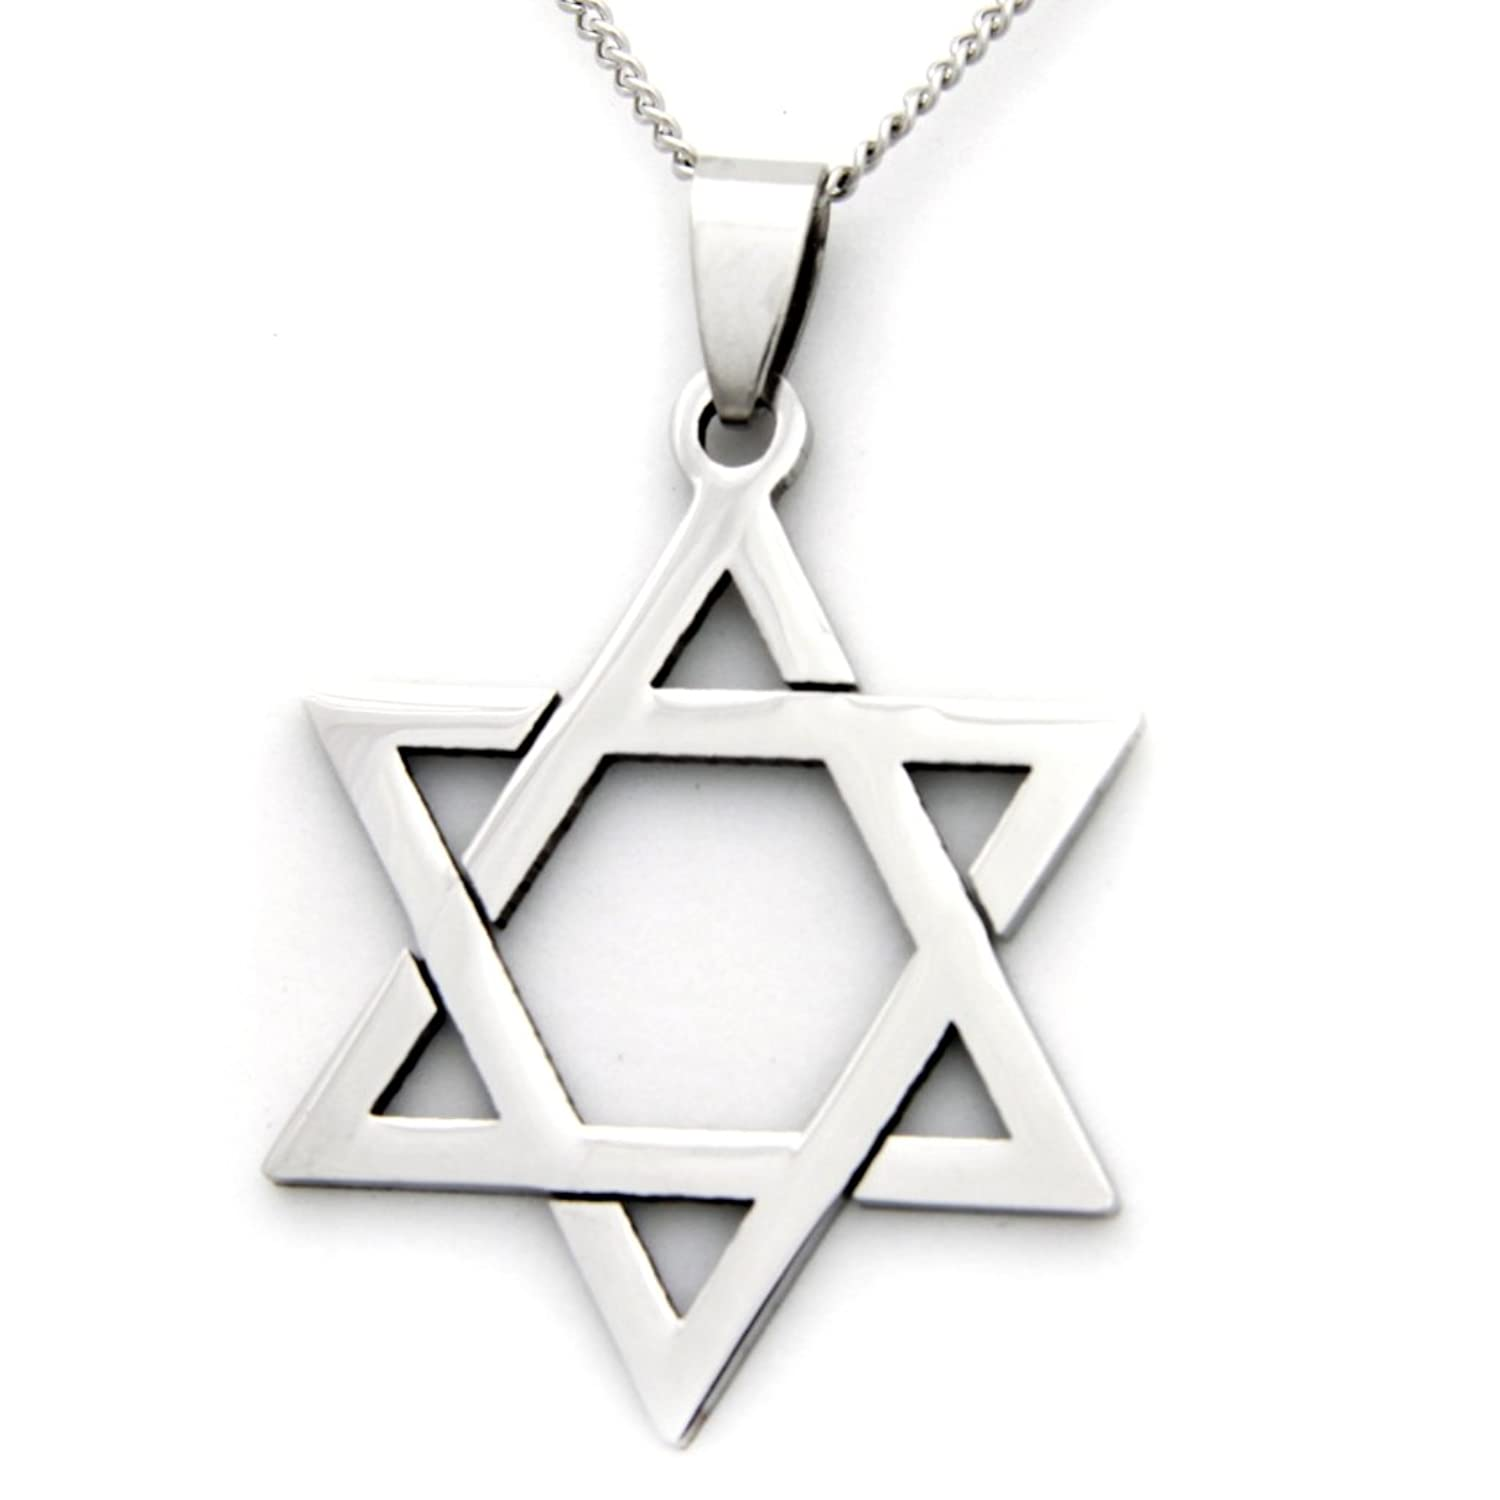 Jewish star of david pendant necklace stainless steel religious jewish star of david pendant necklace stainless steel religious necklace kabbalah jewelry amazon aloadofball